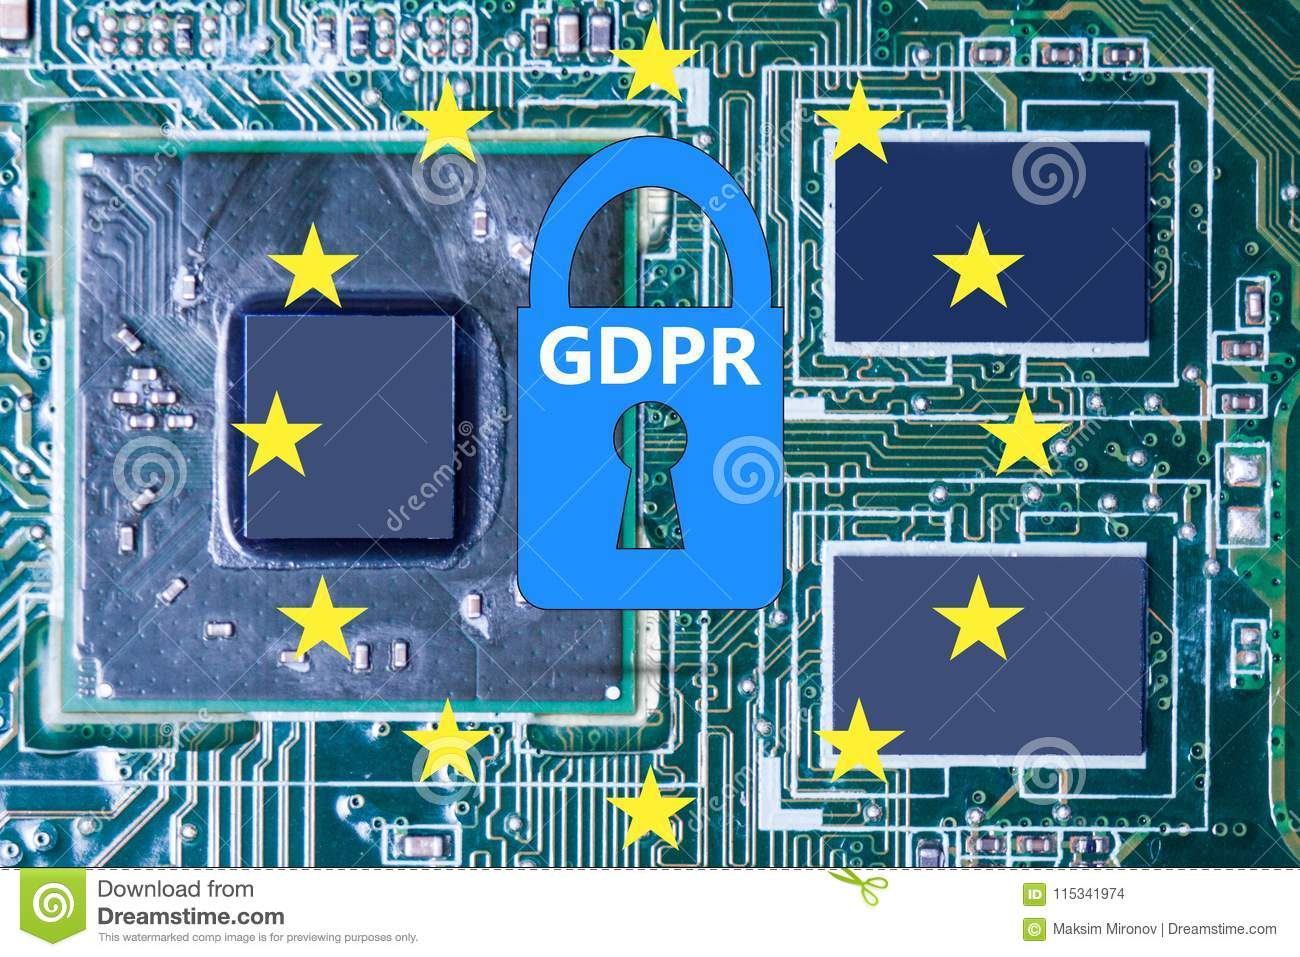 Marvelous Macro Photo Of Circuit Board And Chip With Gdpr Stock Illustration Wiring 101 Breceaxxcnl